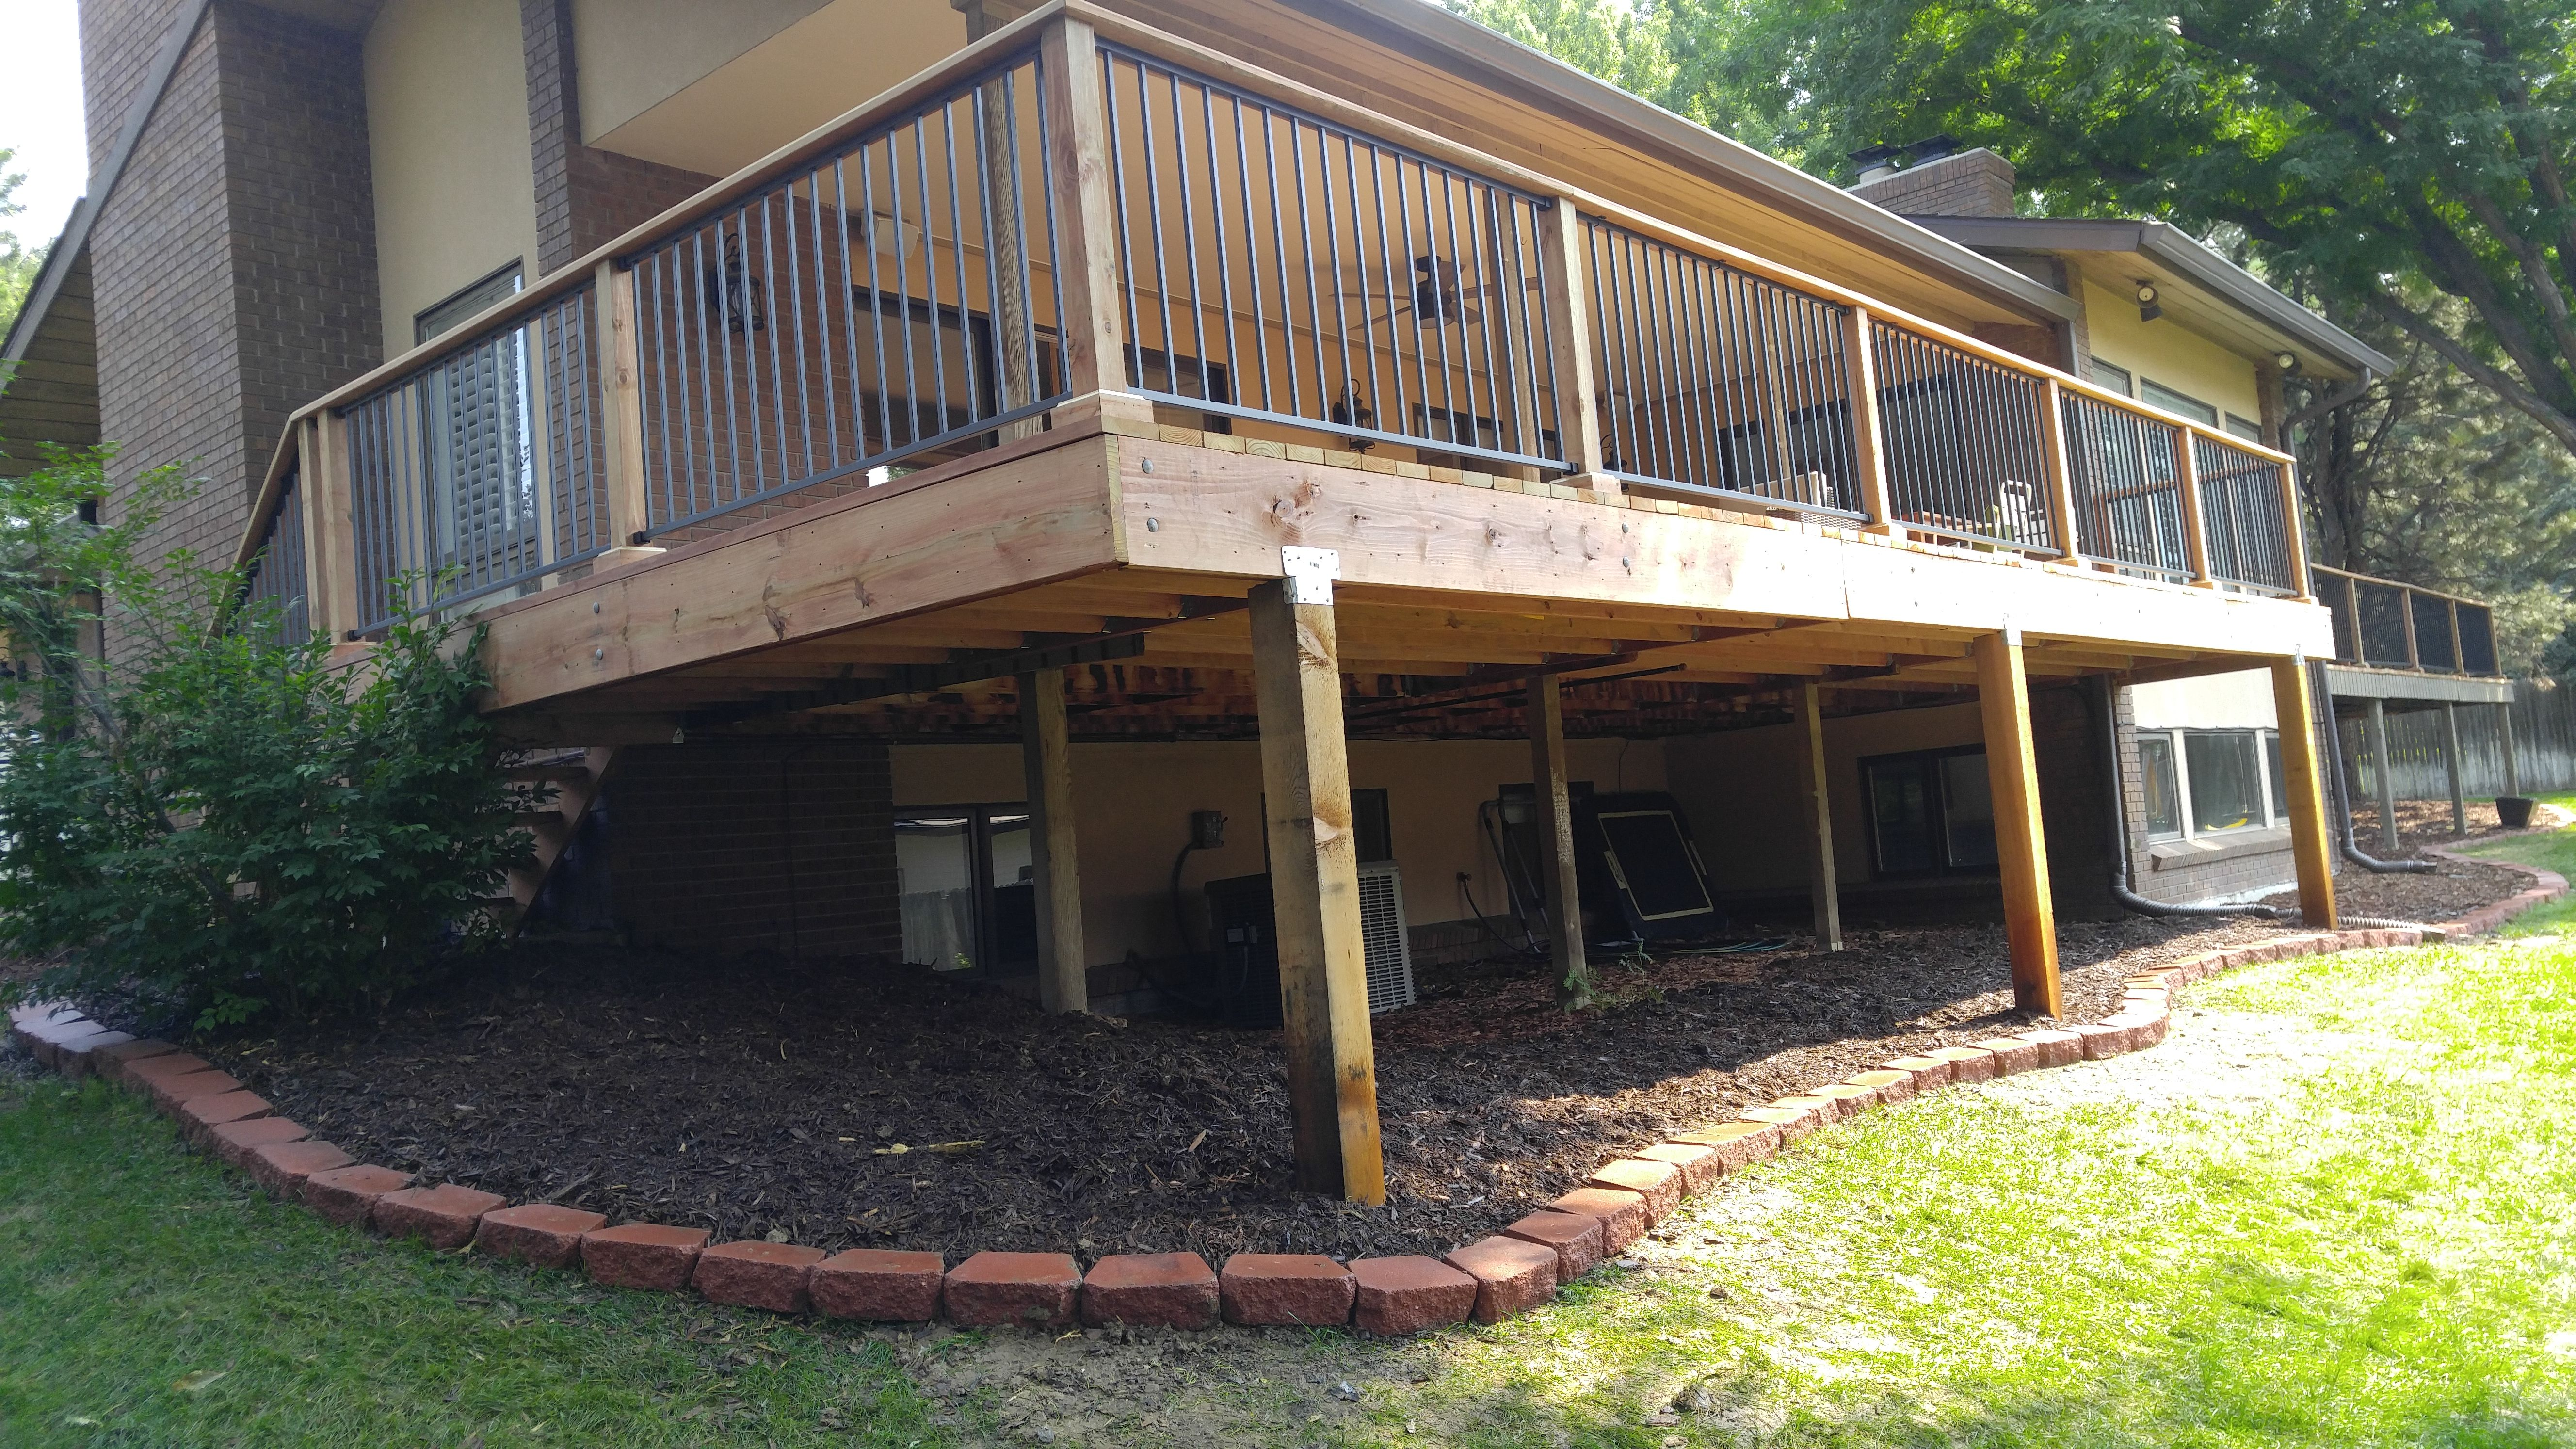 265 Sq Ft Deck Extension With Custom Handrail Design